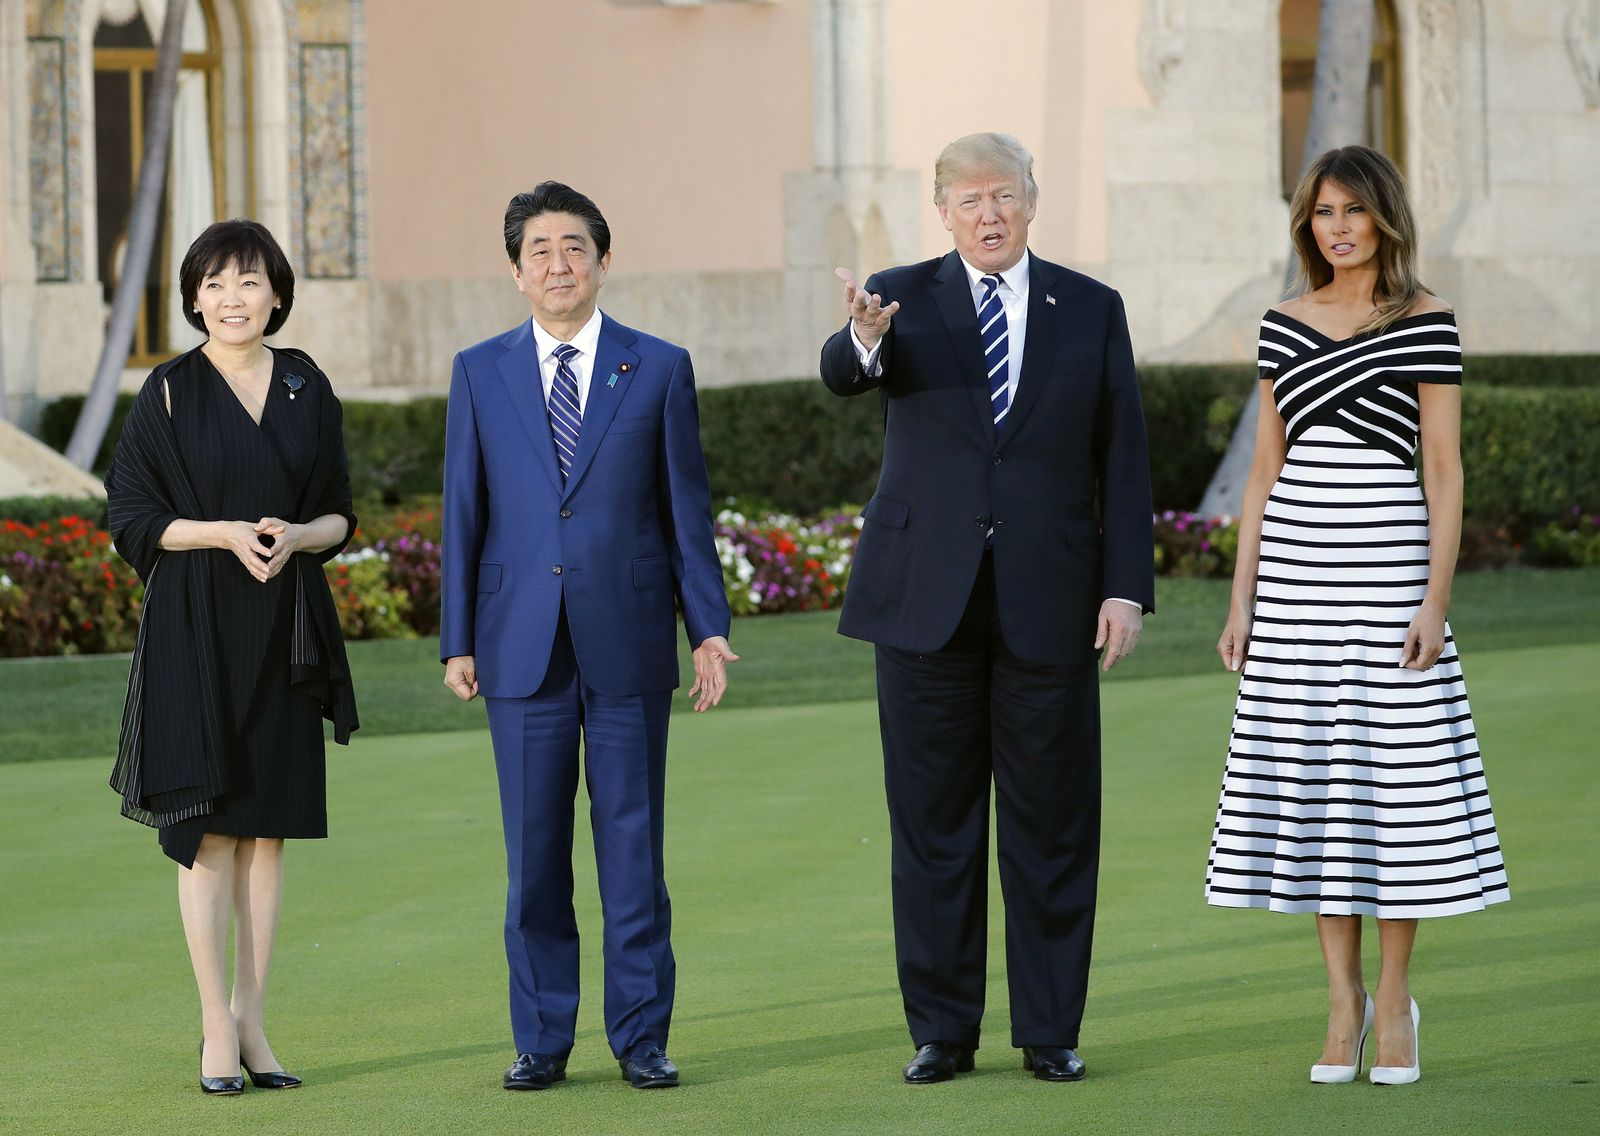 Donald Trump, first lady Melania Trump, with Japanese Prime Minister Shinzo Abe and his wife Akie Abe